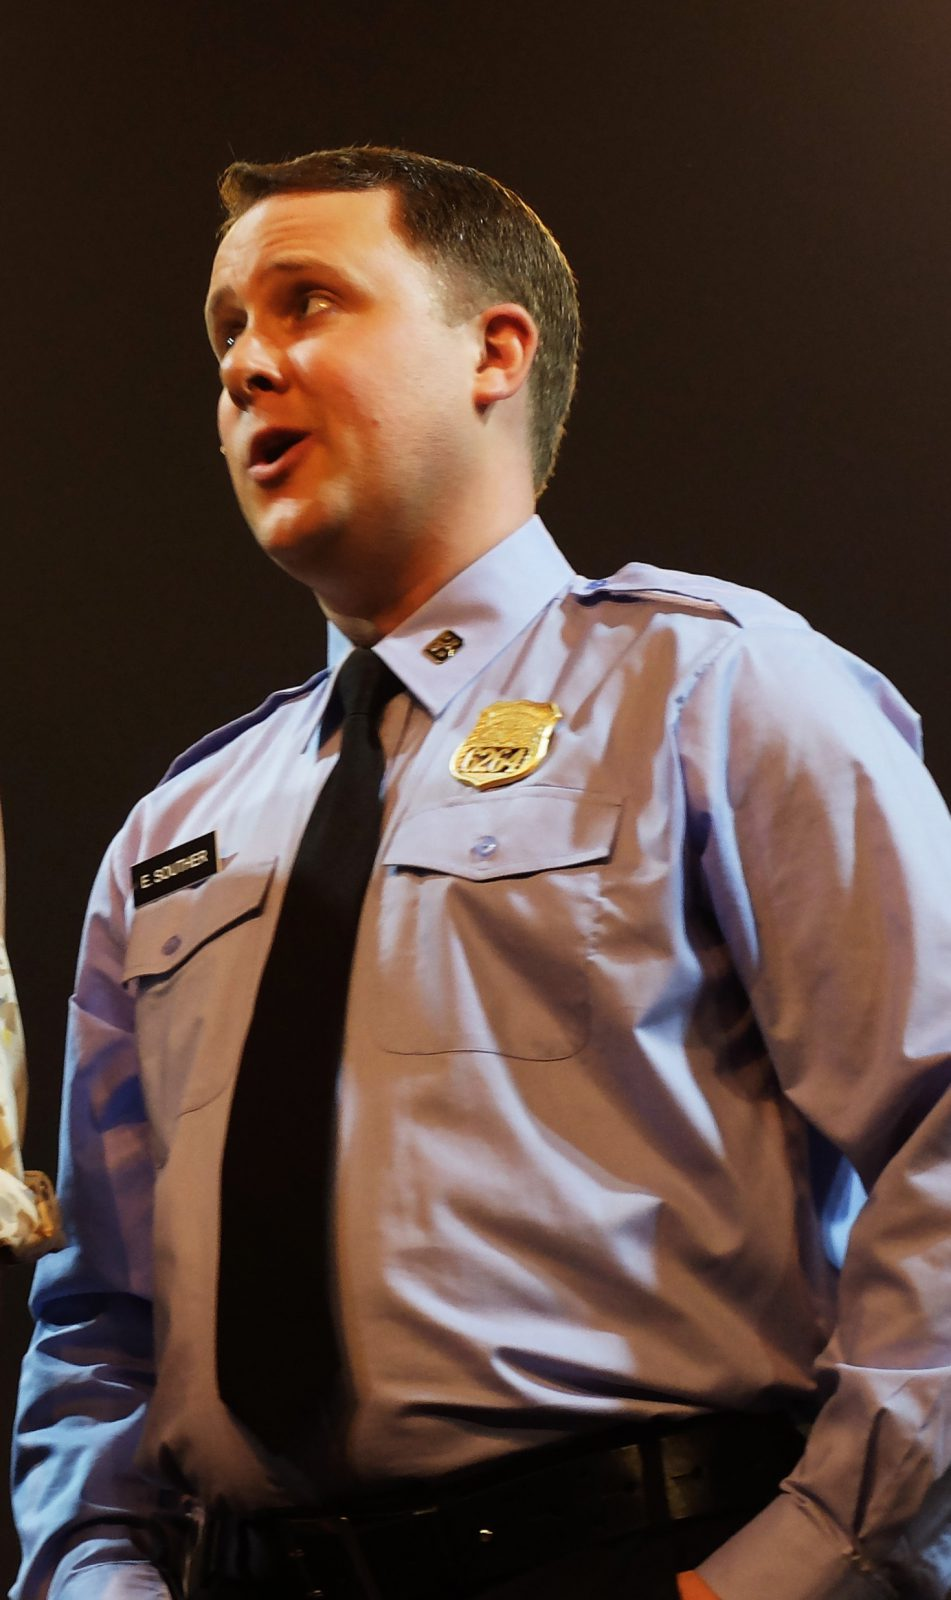 Sister Act - Eddie Souther costume consiting og blue police shirt tie gold police badge.